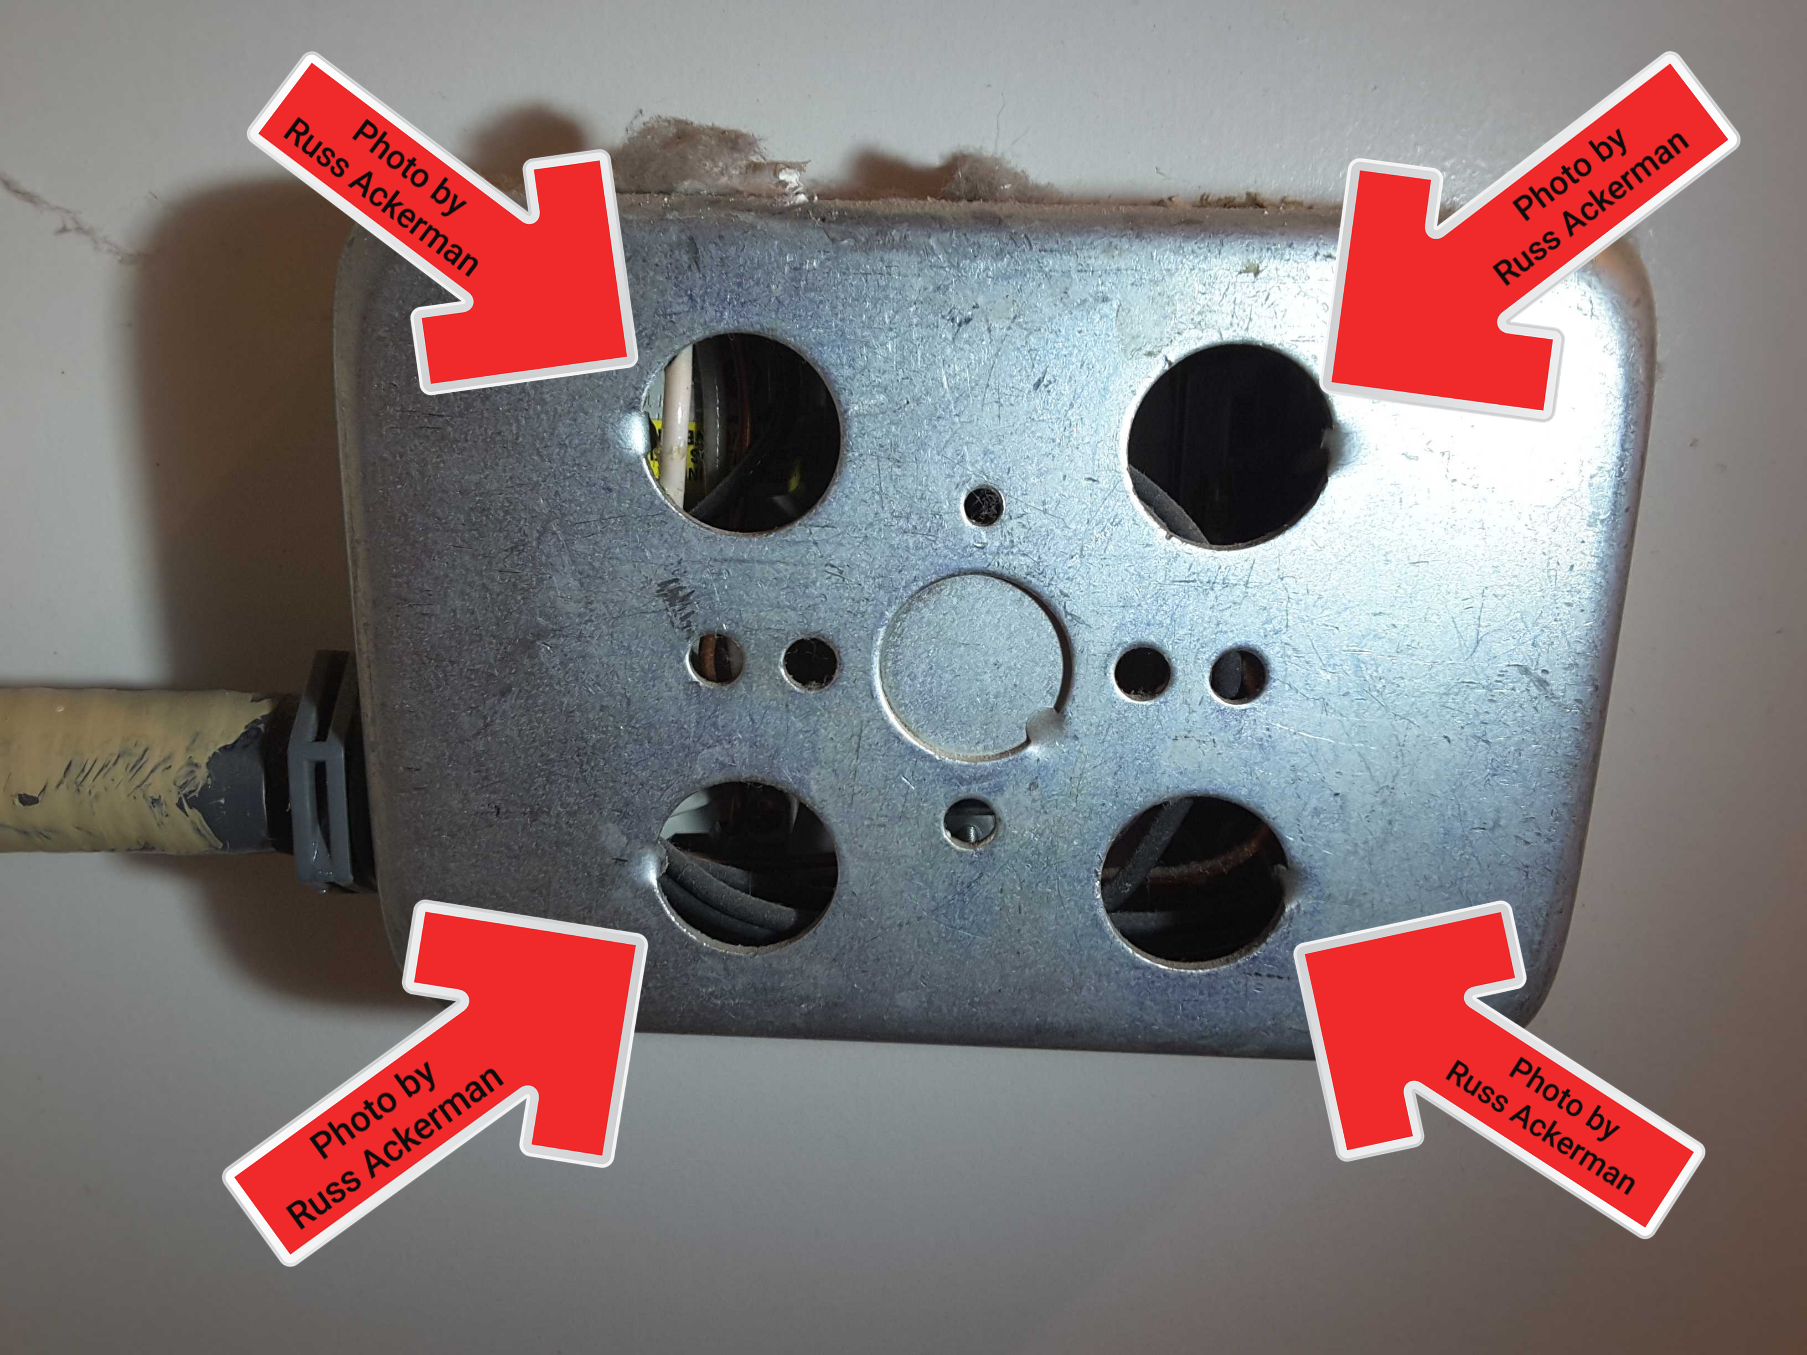 Missing knock outs at junction boxes are a safety hazard. There should be no openings and proper bushings at metal boxes.